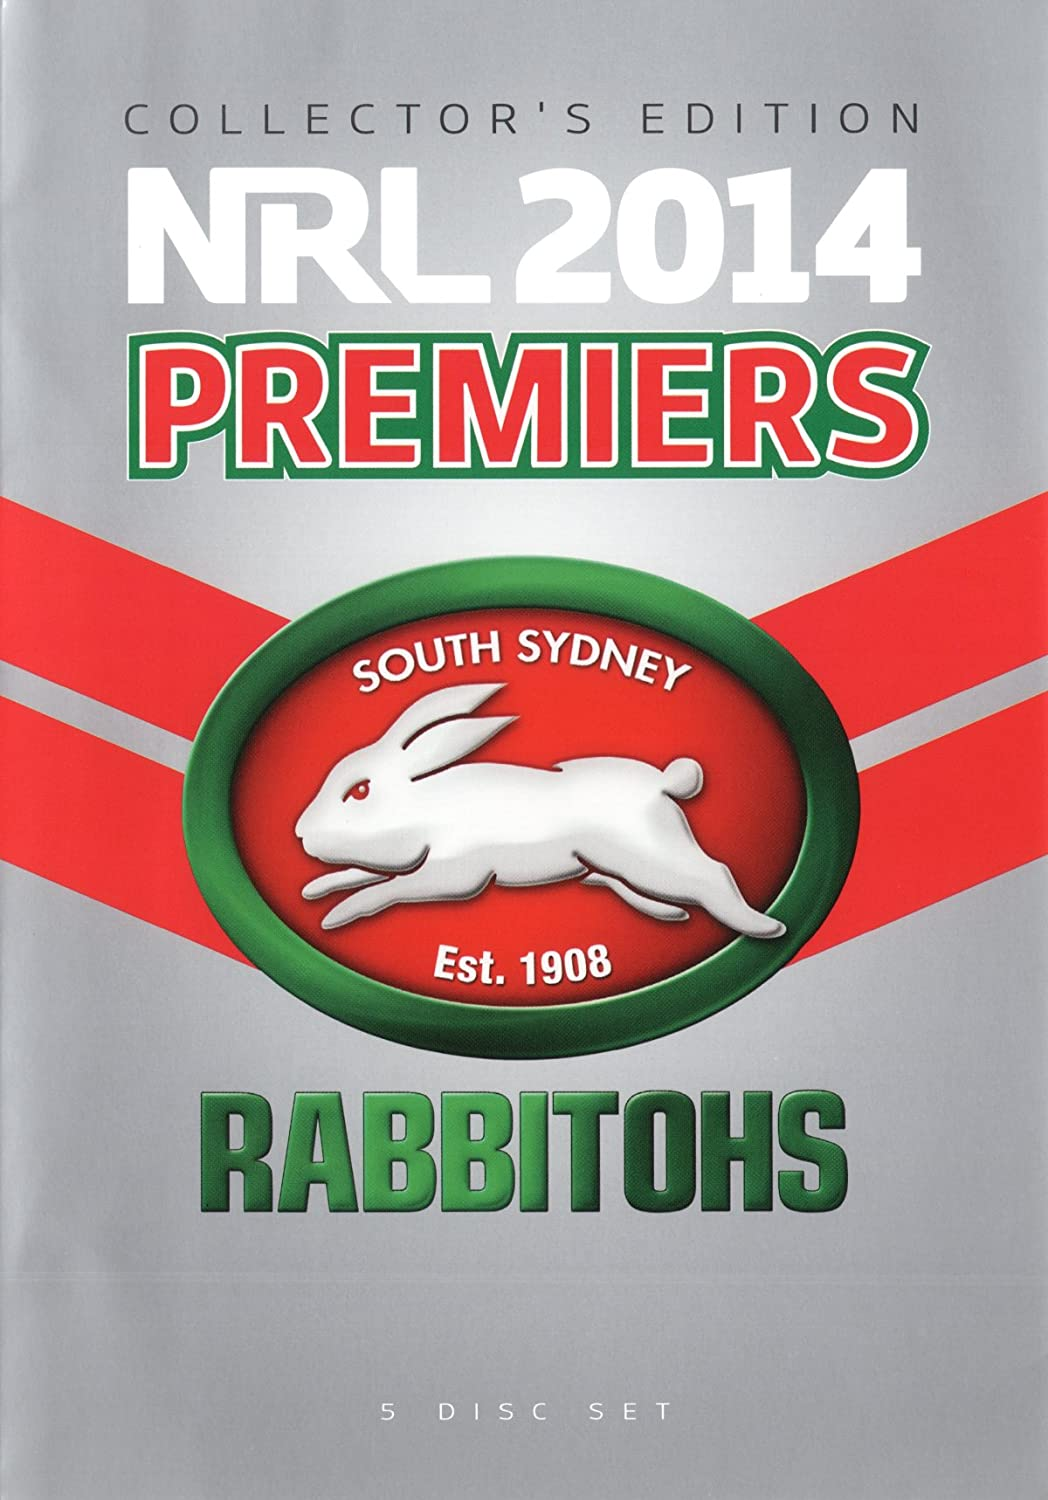 Amazon Com Nrl 2014 Premiers South Sydney Rabbitohs Collectors Edition Non Usa Format Pal Region 4 Import Australia Ray Warren Peter Stirling Paul Vautin Movies Tv